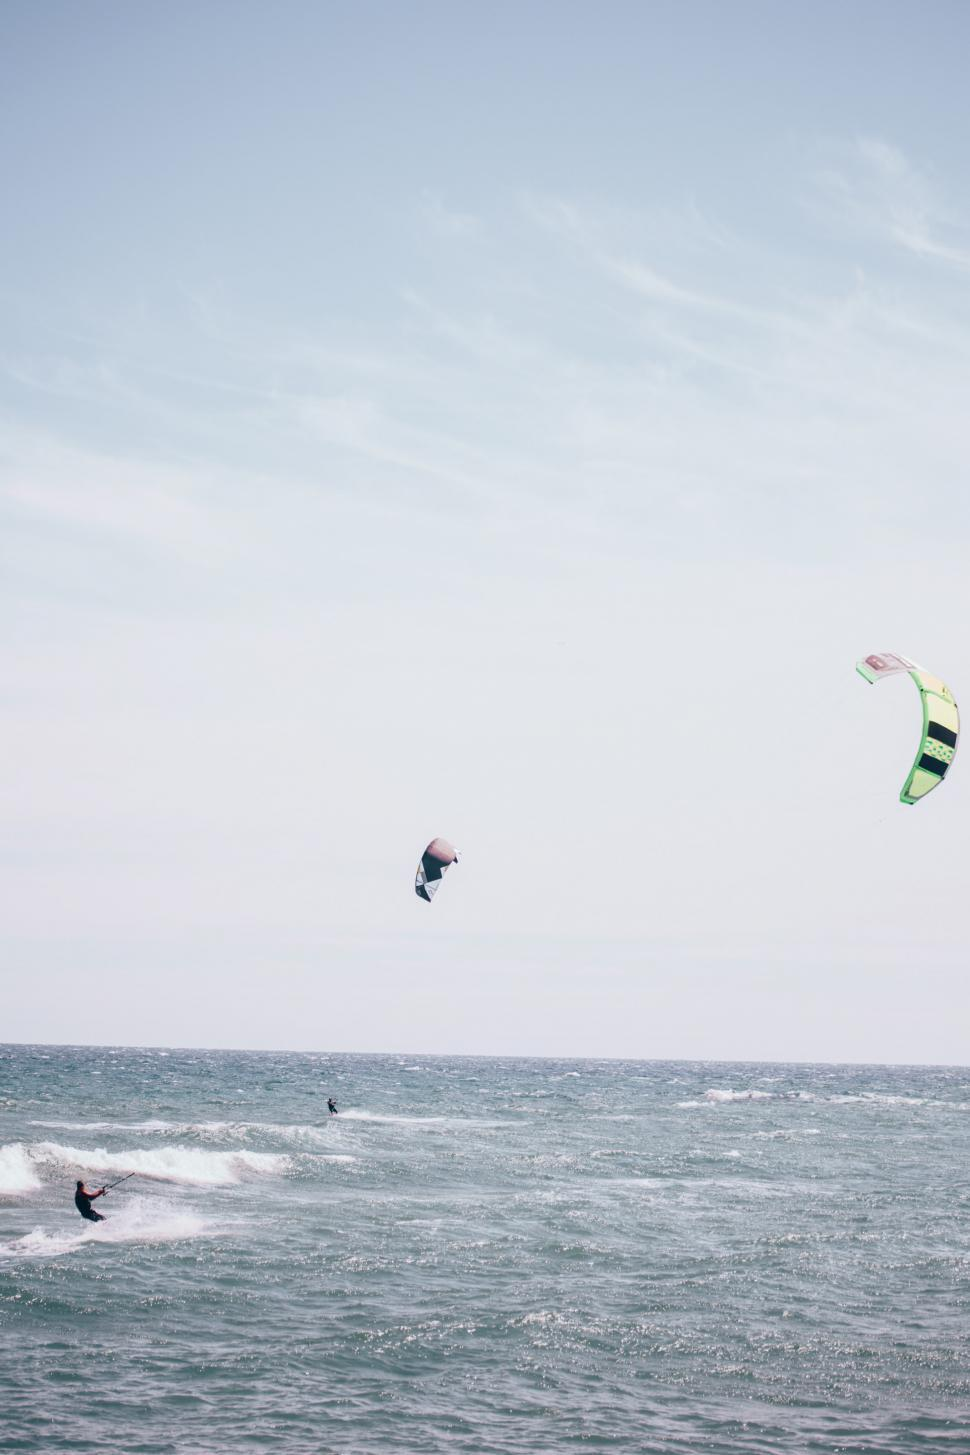 Download Free Stock HD Photo of Surfboarding with surfing kite Online